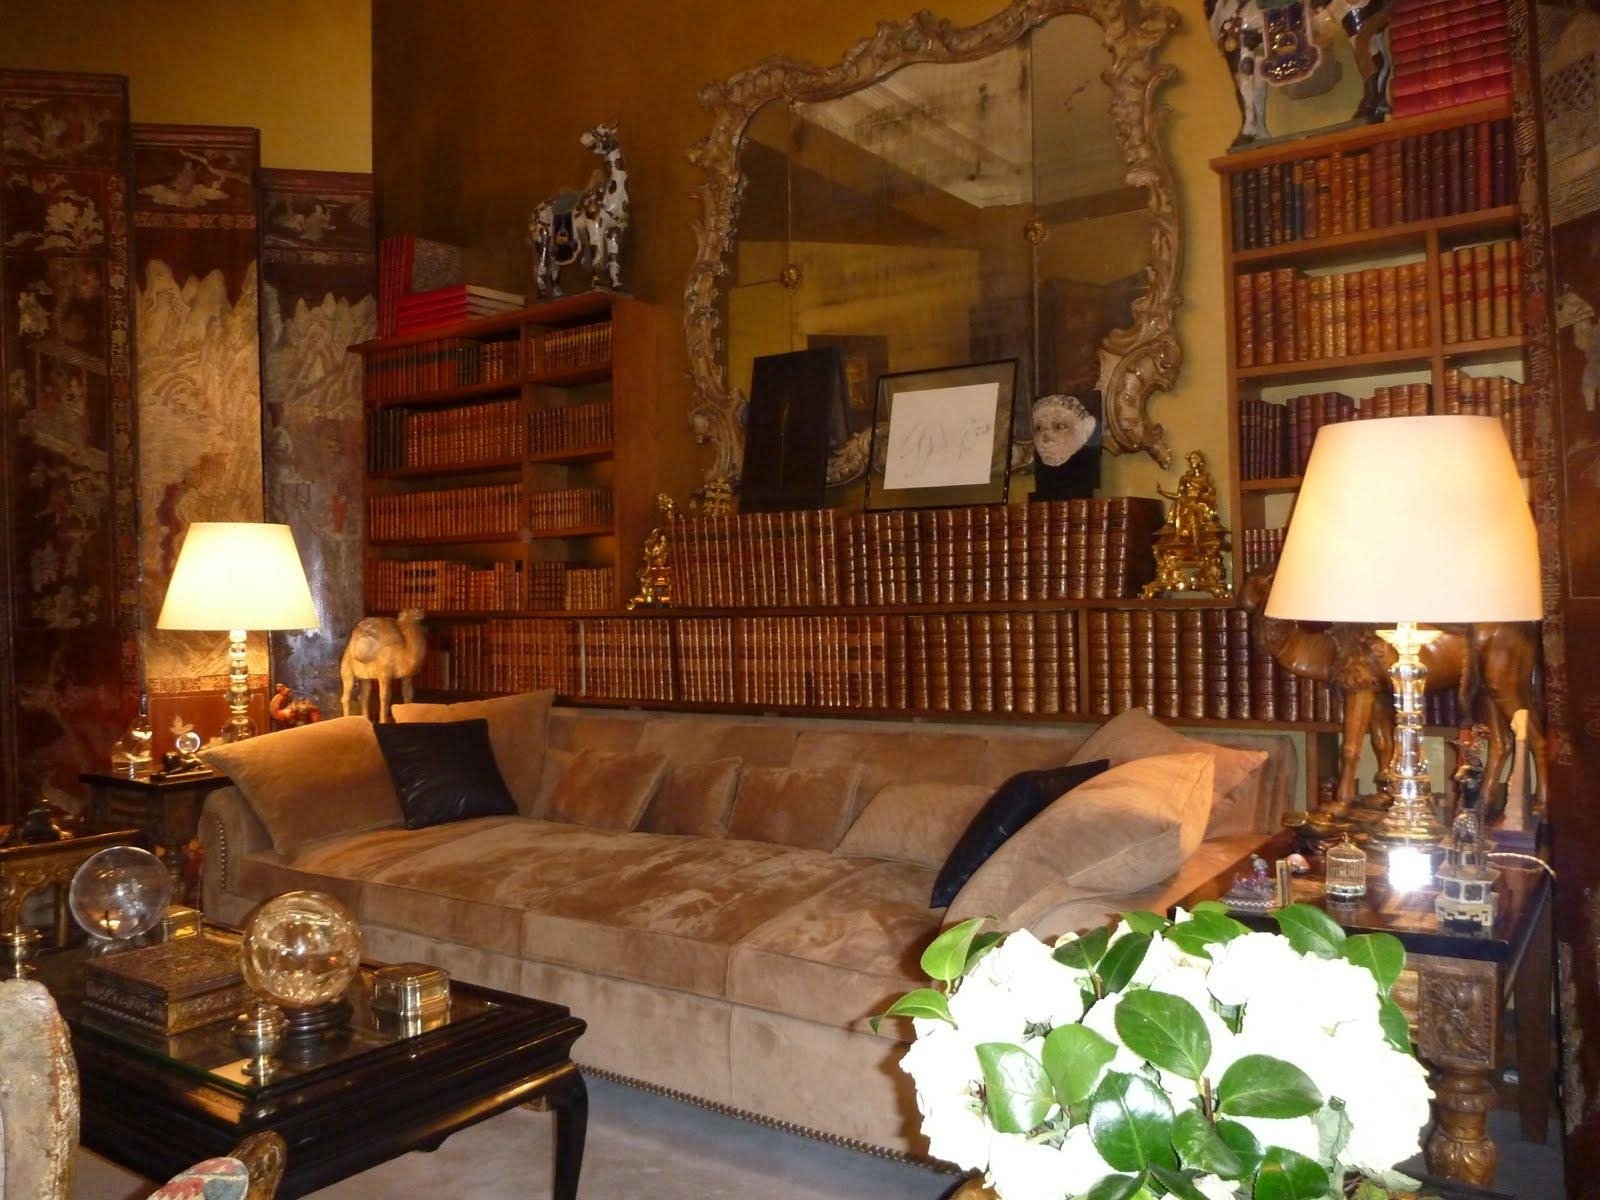 Coco Chanel Sofa With Design Ideas 22123 | Kengire Intended For Coco Chanel Sofas (View 4 of 20)